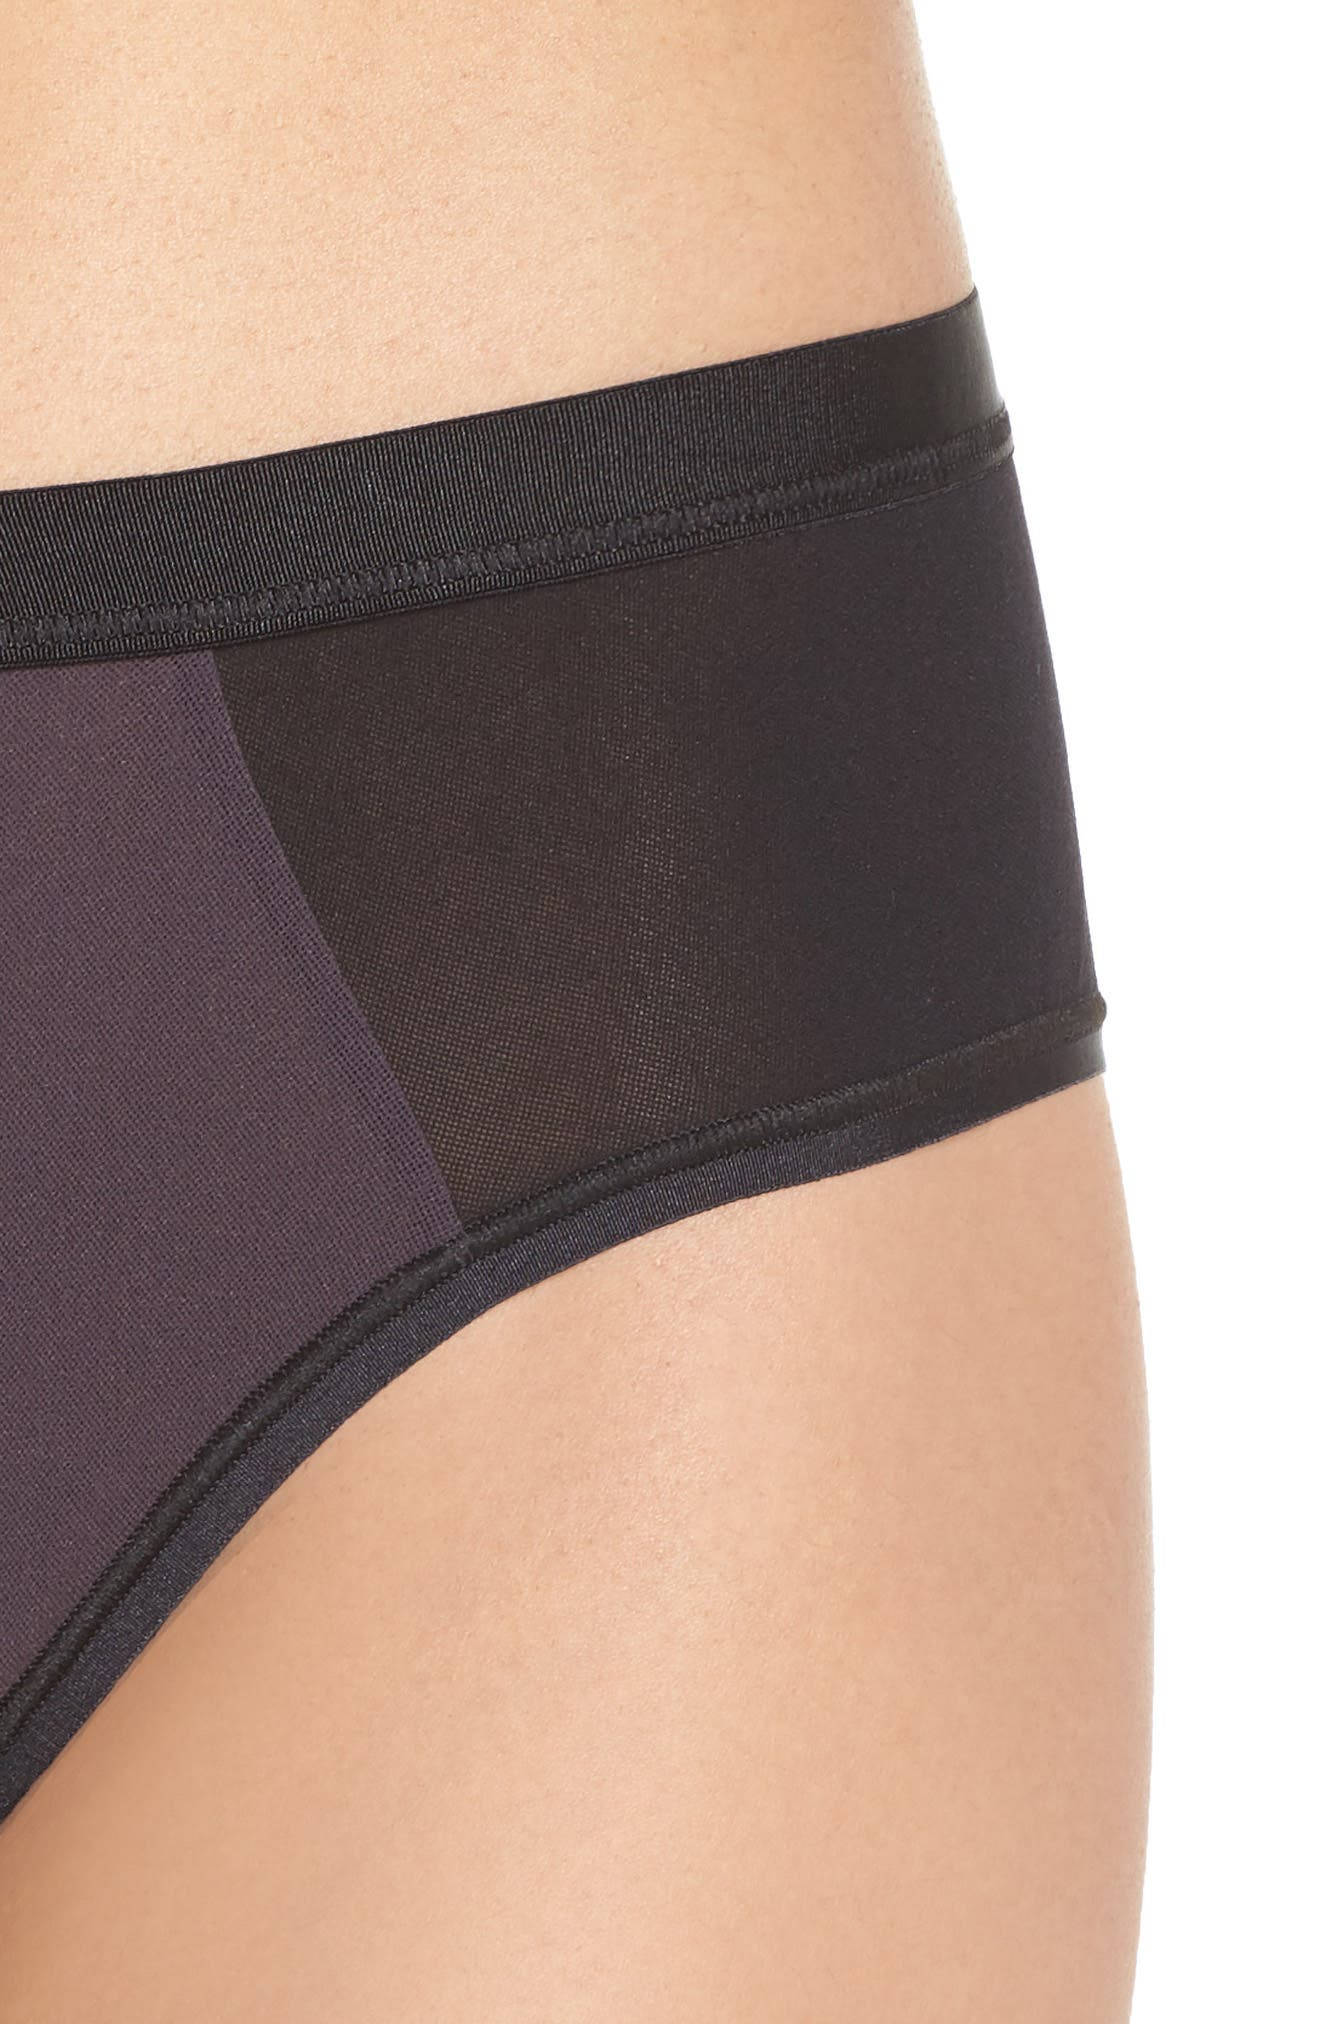 Colorblock Briefs,                             Alternate thumbnail 4, color,                             GRAPH BLACK